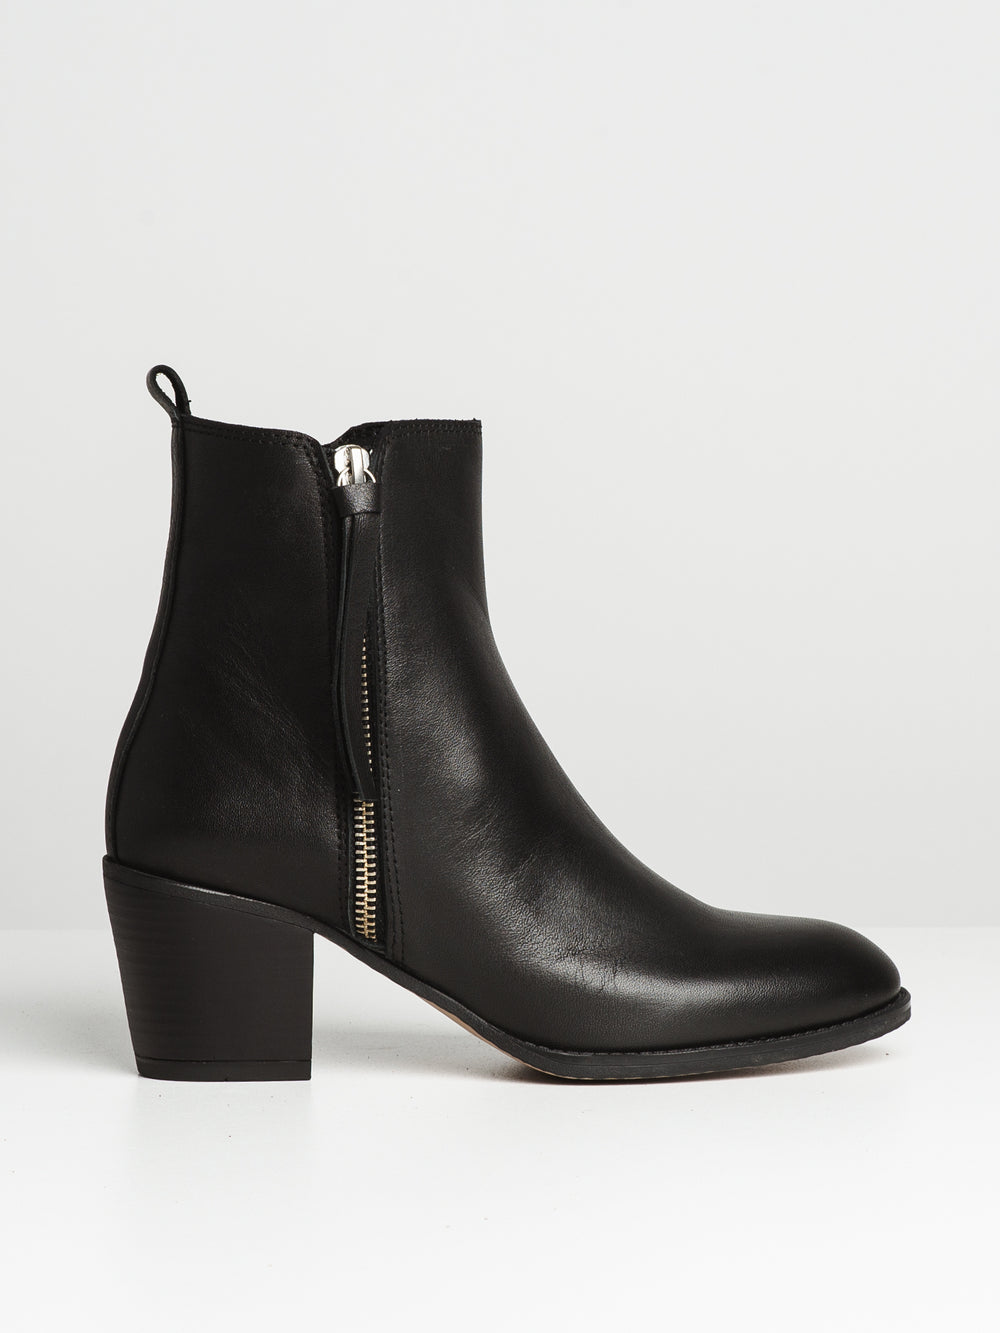 WOMENS LANDON - BLACK-D4